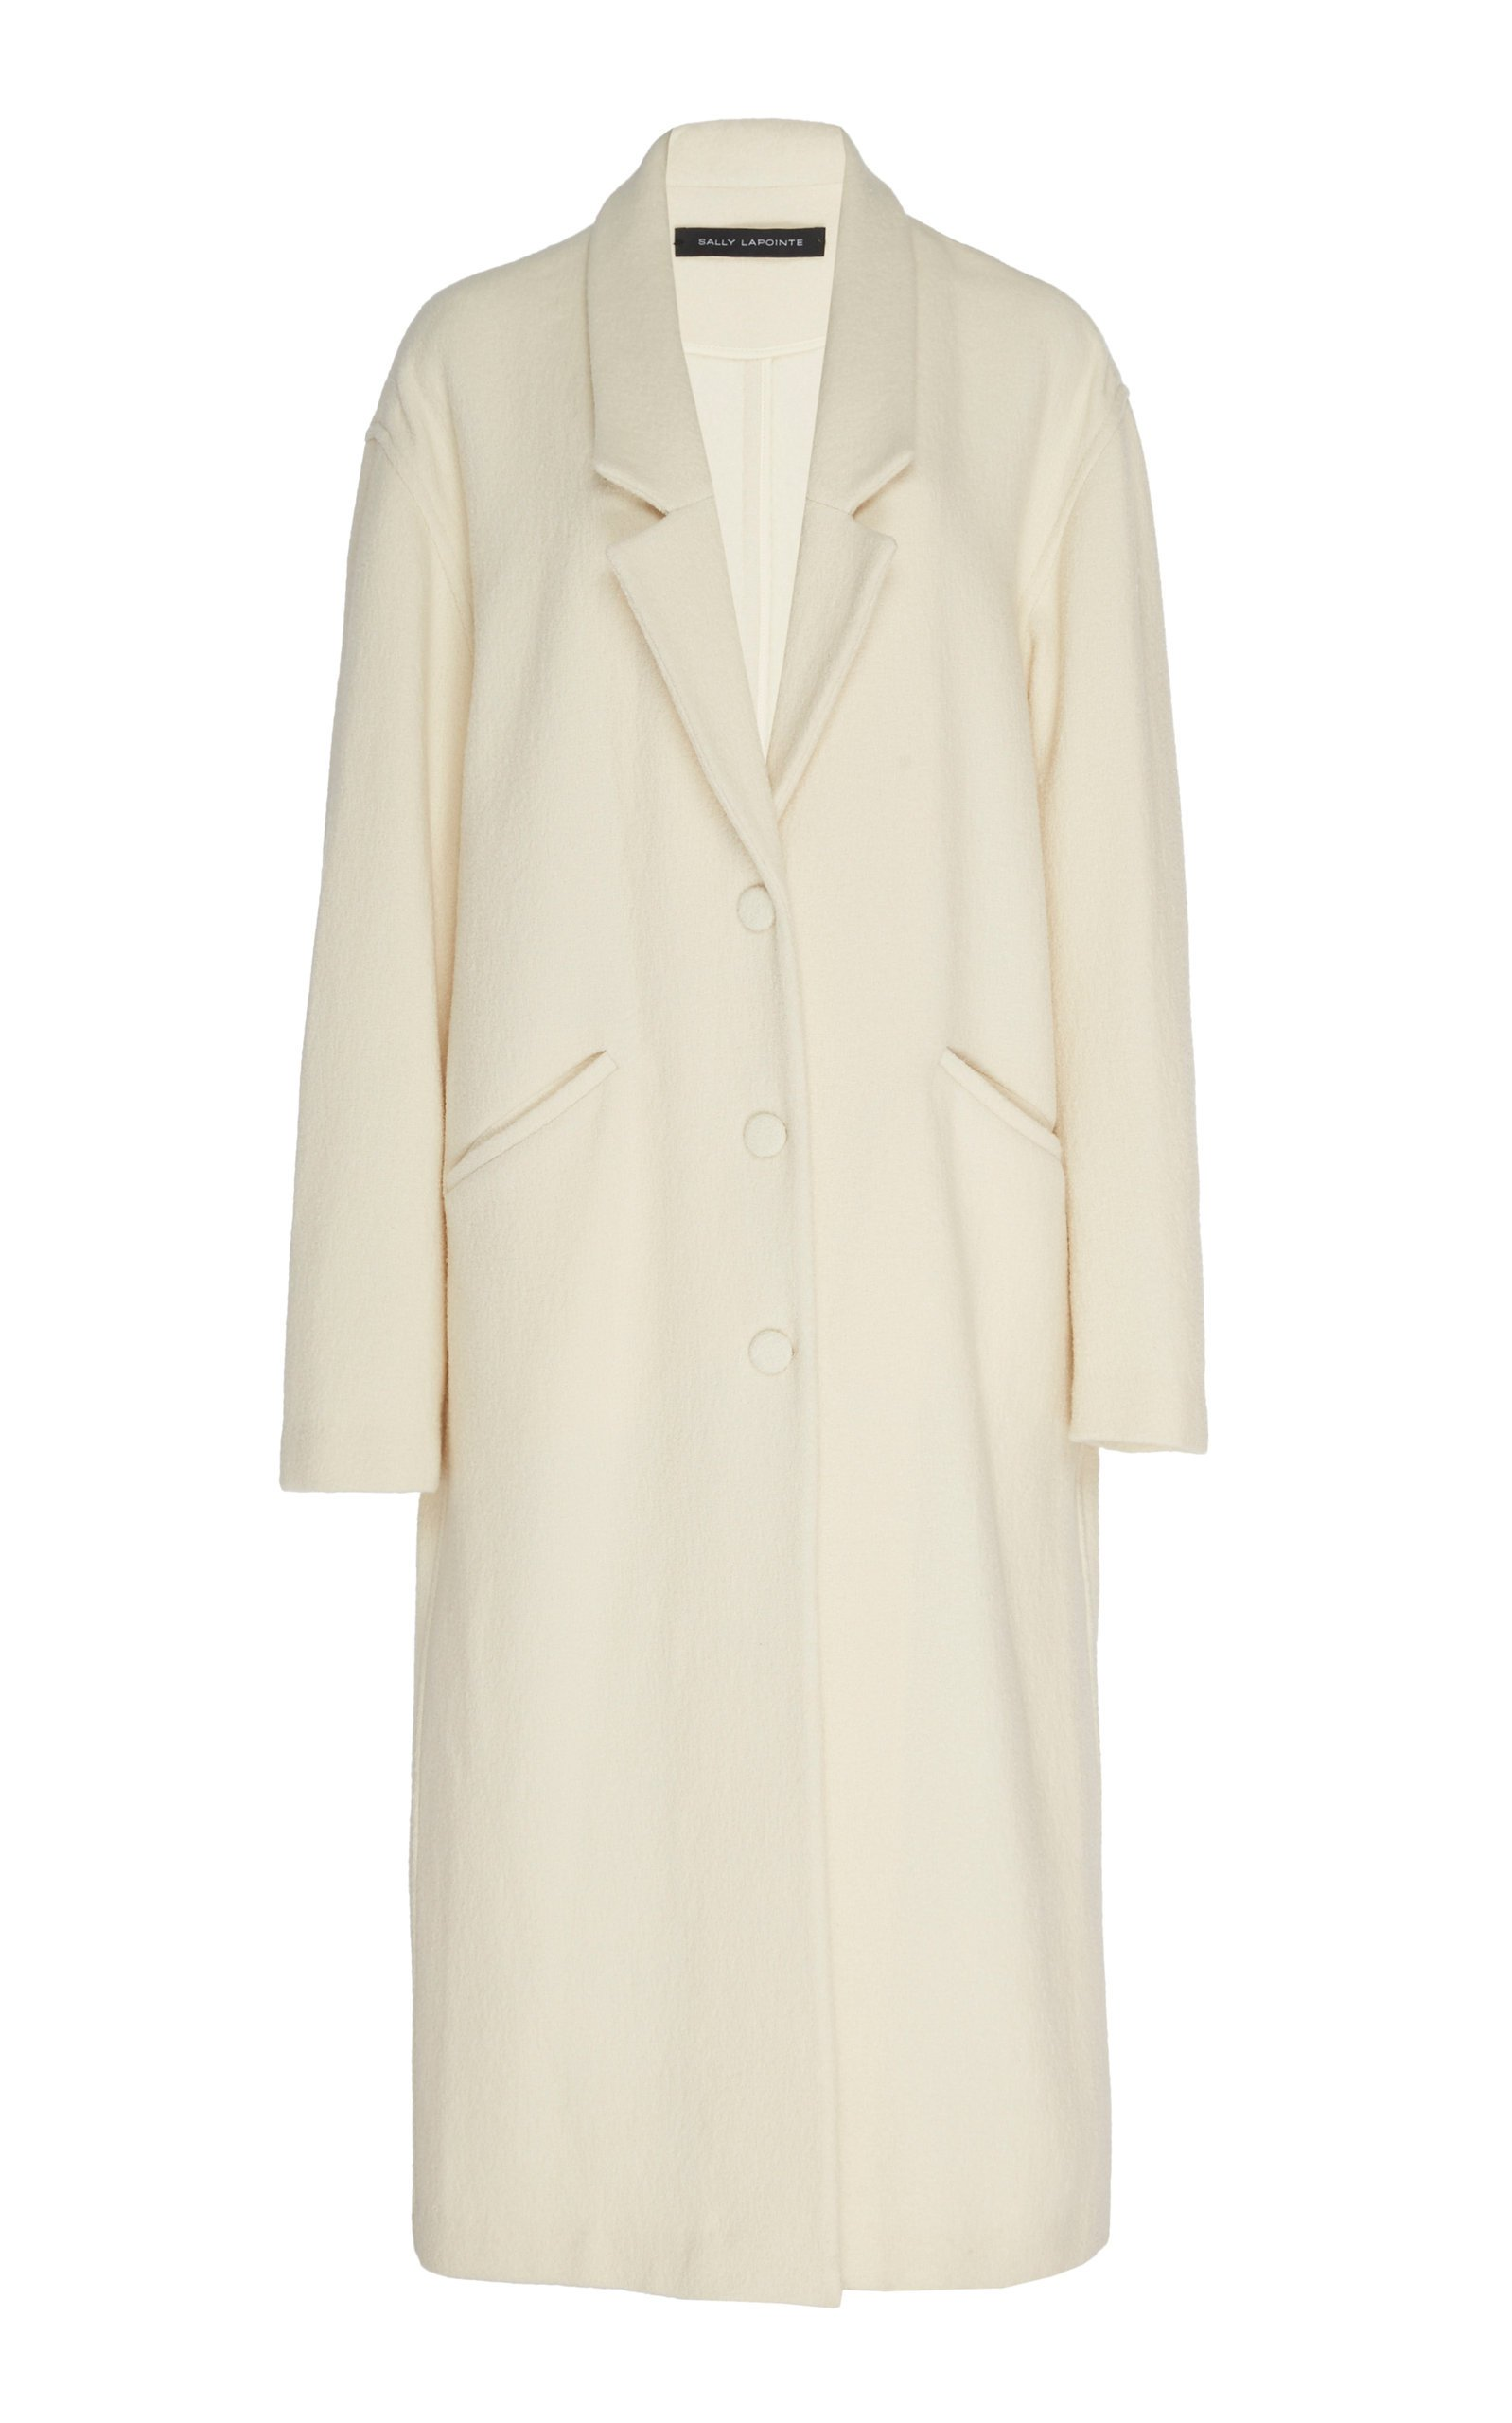 Sally LaPointe Wool Boucle Long Dropped Collar Coat